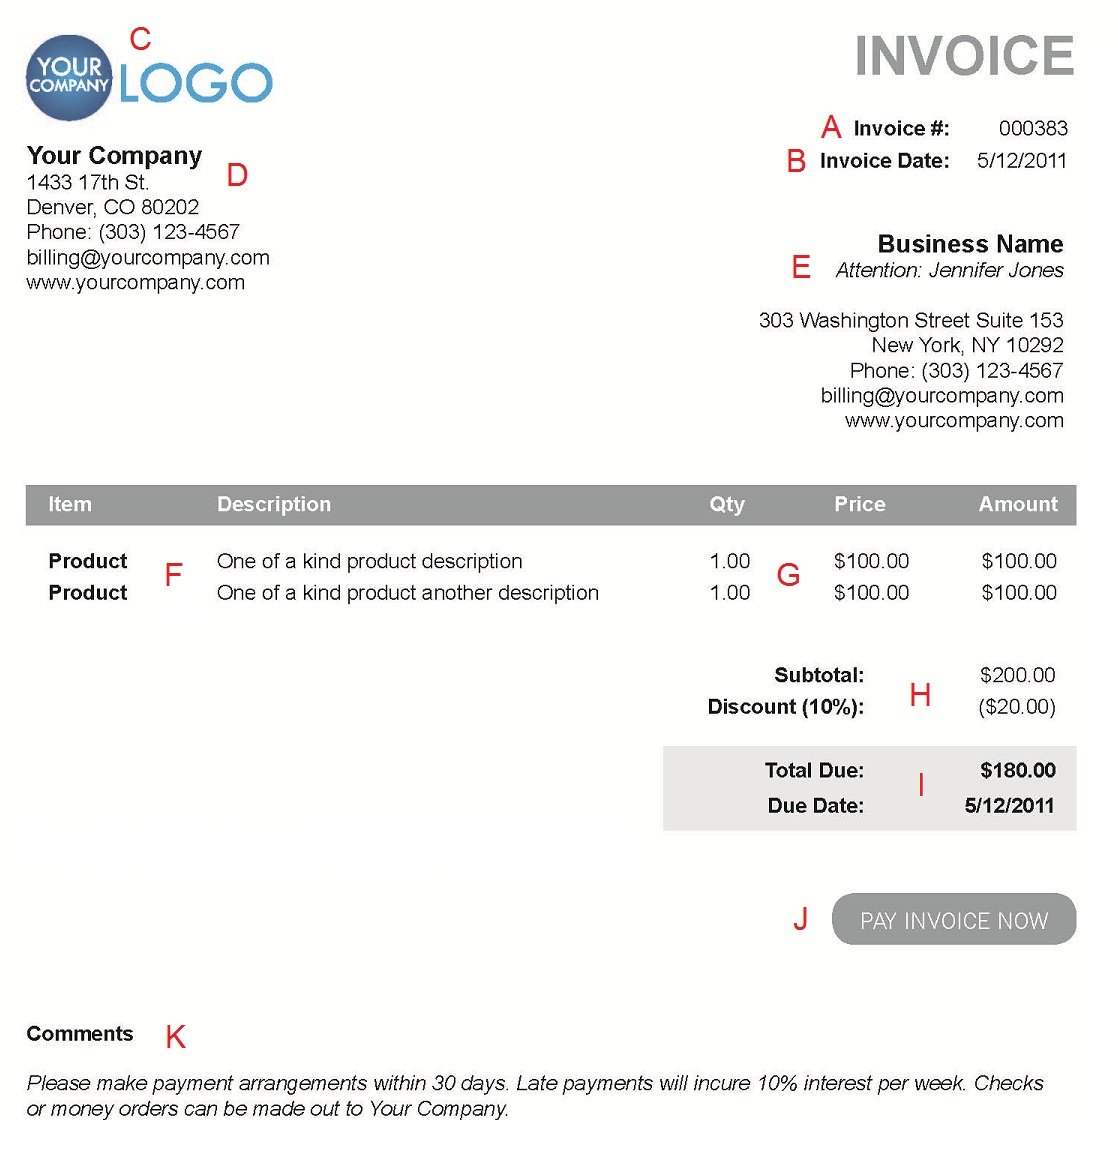 Coachoutletonlineplusus  Surprising The  Different Sections Of An Electronic Payment Invoice With Fair A  With Astounding Buy Receipt Book Also Bill Of Sale Receipt Template In Addition Free Printable Receipt Form And How To Organize Receipts For Small Business As Well As Receipt Blank Additionally Private Car Sale Receipt From Paysimplecom With Coachoutletonlineplusus  Fair The  Different Sections Of An Electronic Payment Invoice With Astounding A  And Surprising Buy Receipt Book Also Bill Of Sale Receipt Template In Addition Free Printable Receipt Form From Paysimplecom